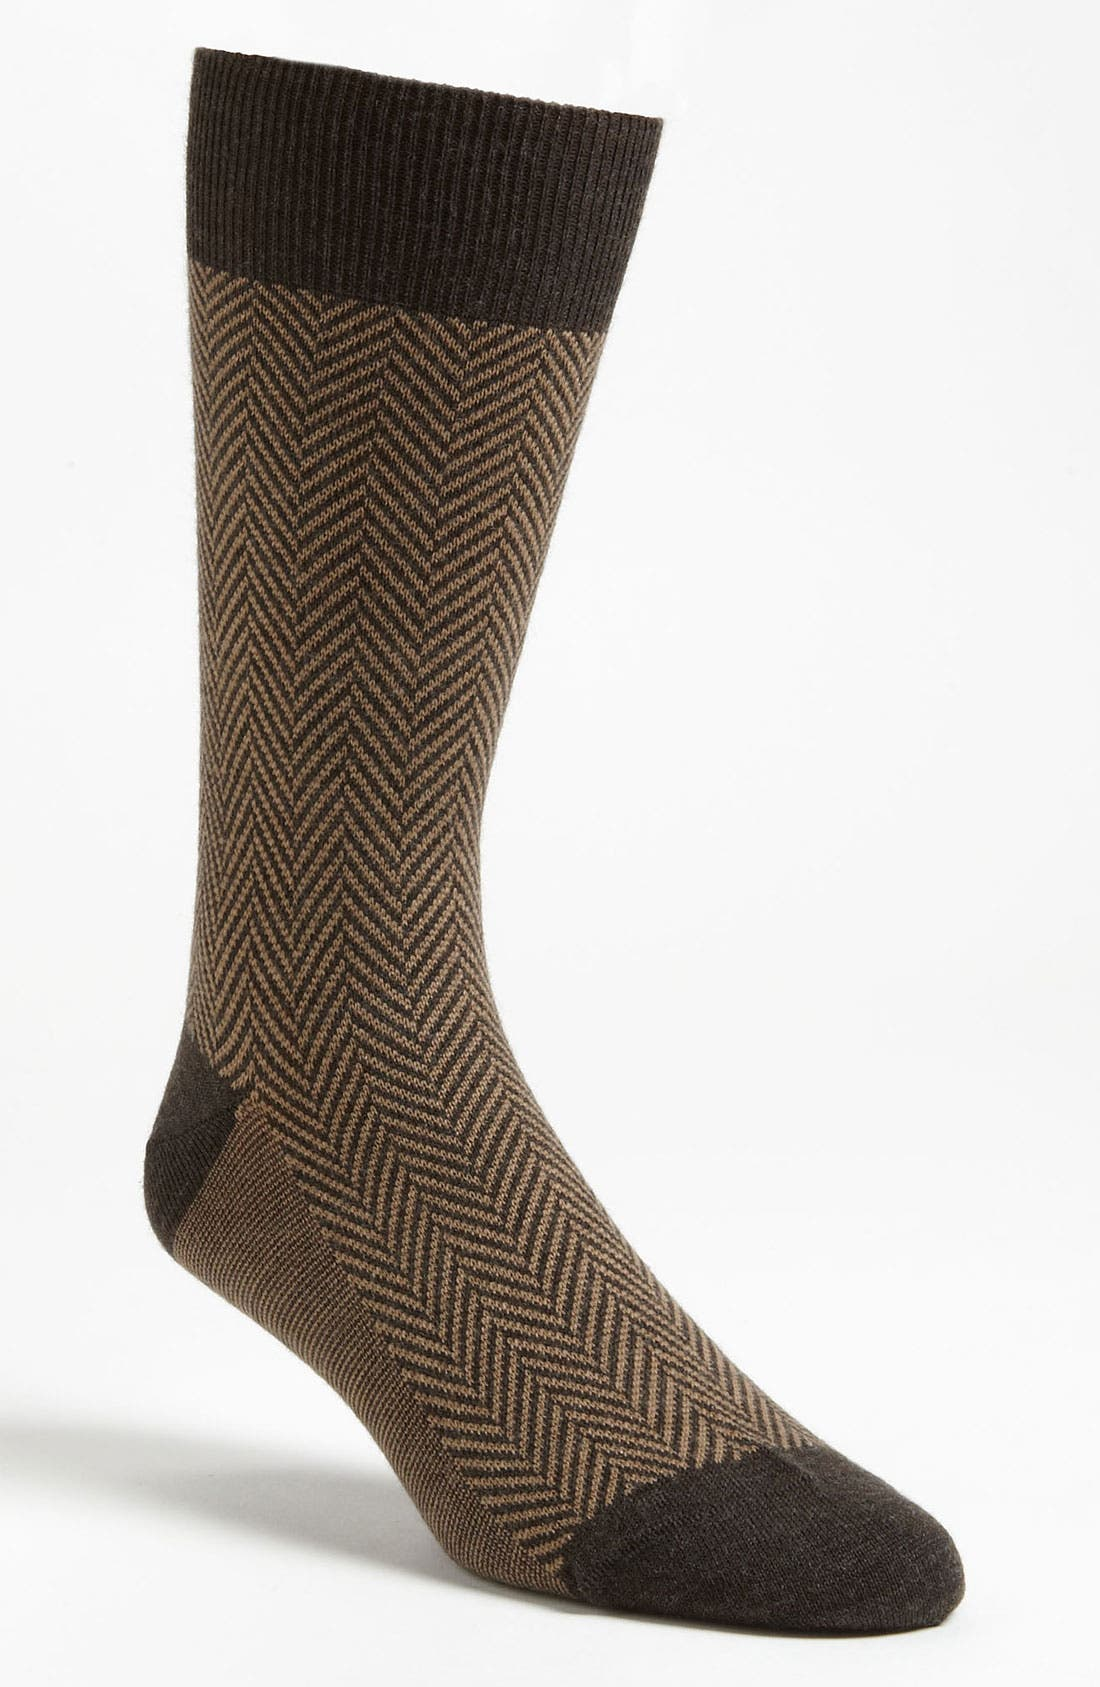 Alternate Image 1 Selected - Pantherella 'Vintage Collection' Herringbone Socks